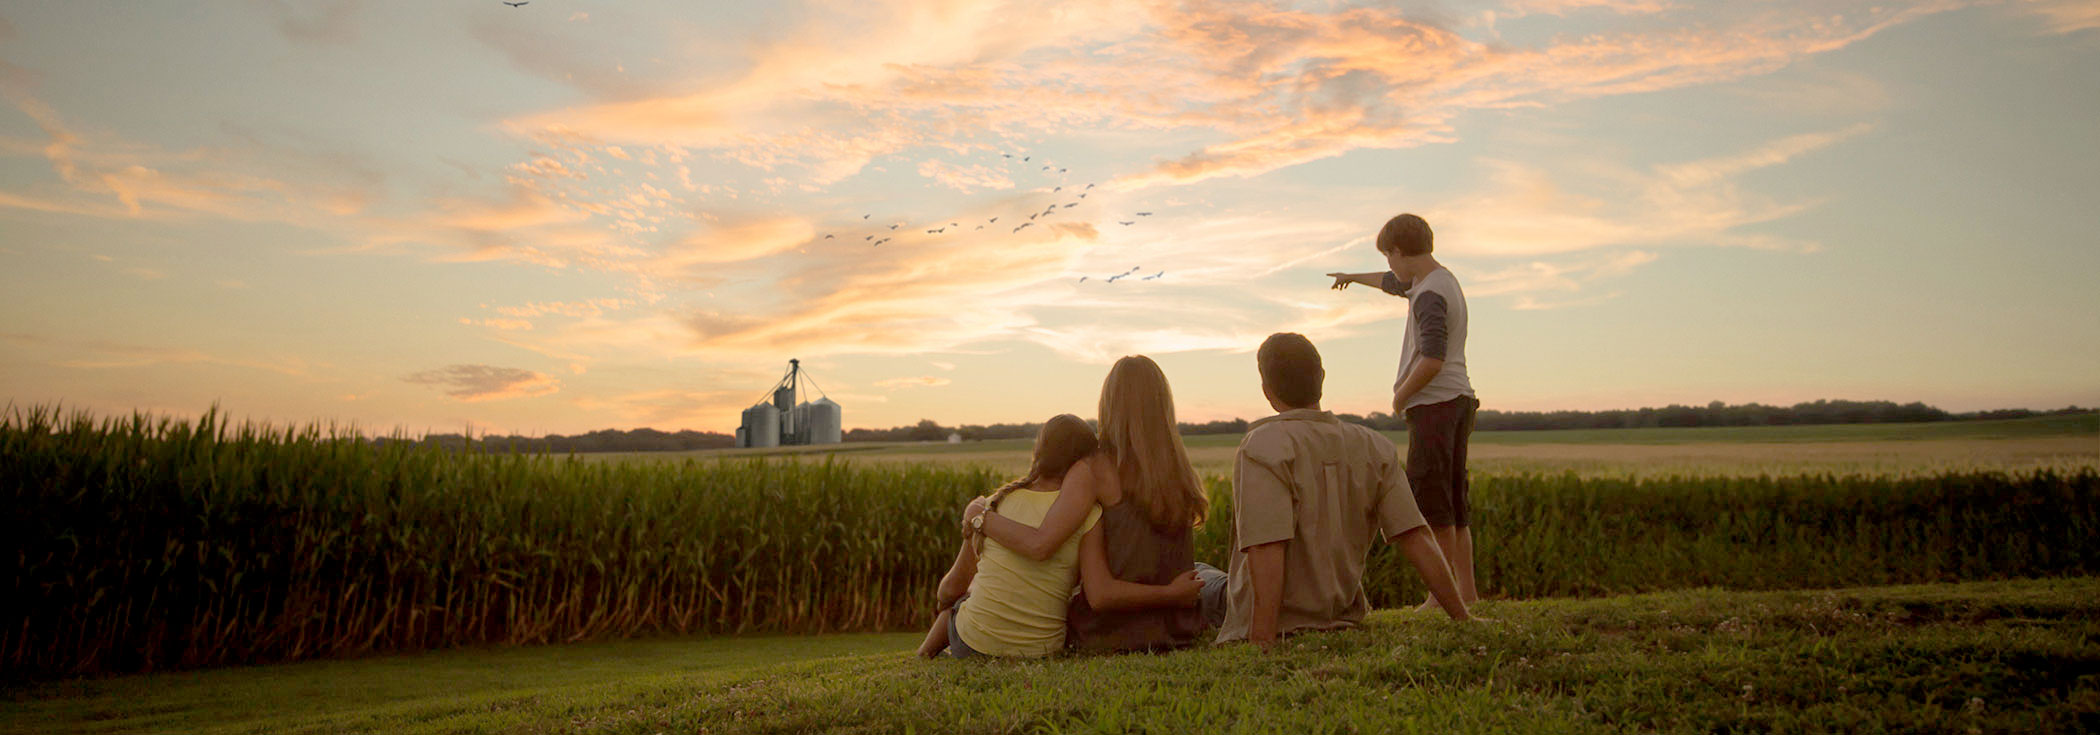 family sits on a grassy area watching the sunset